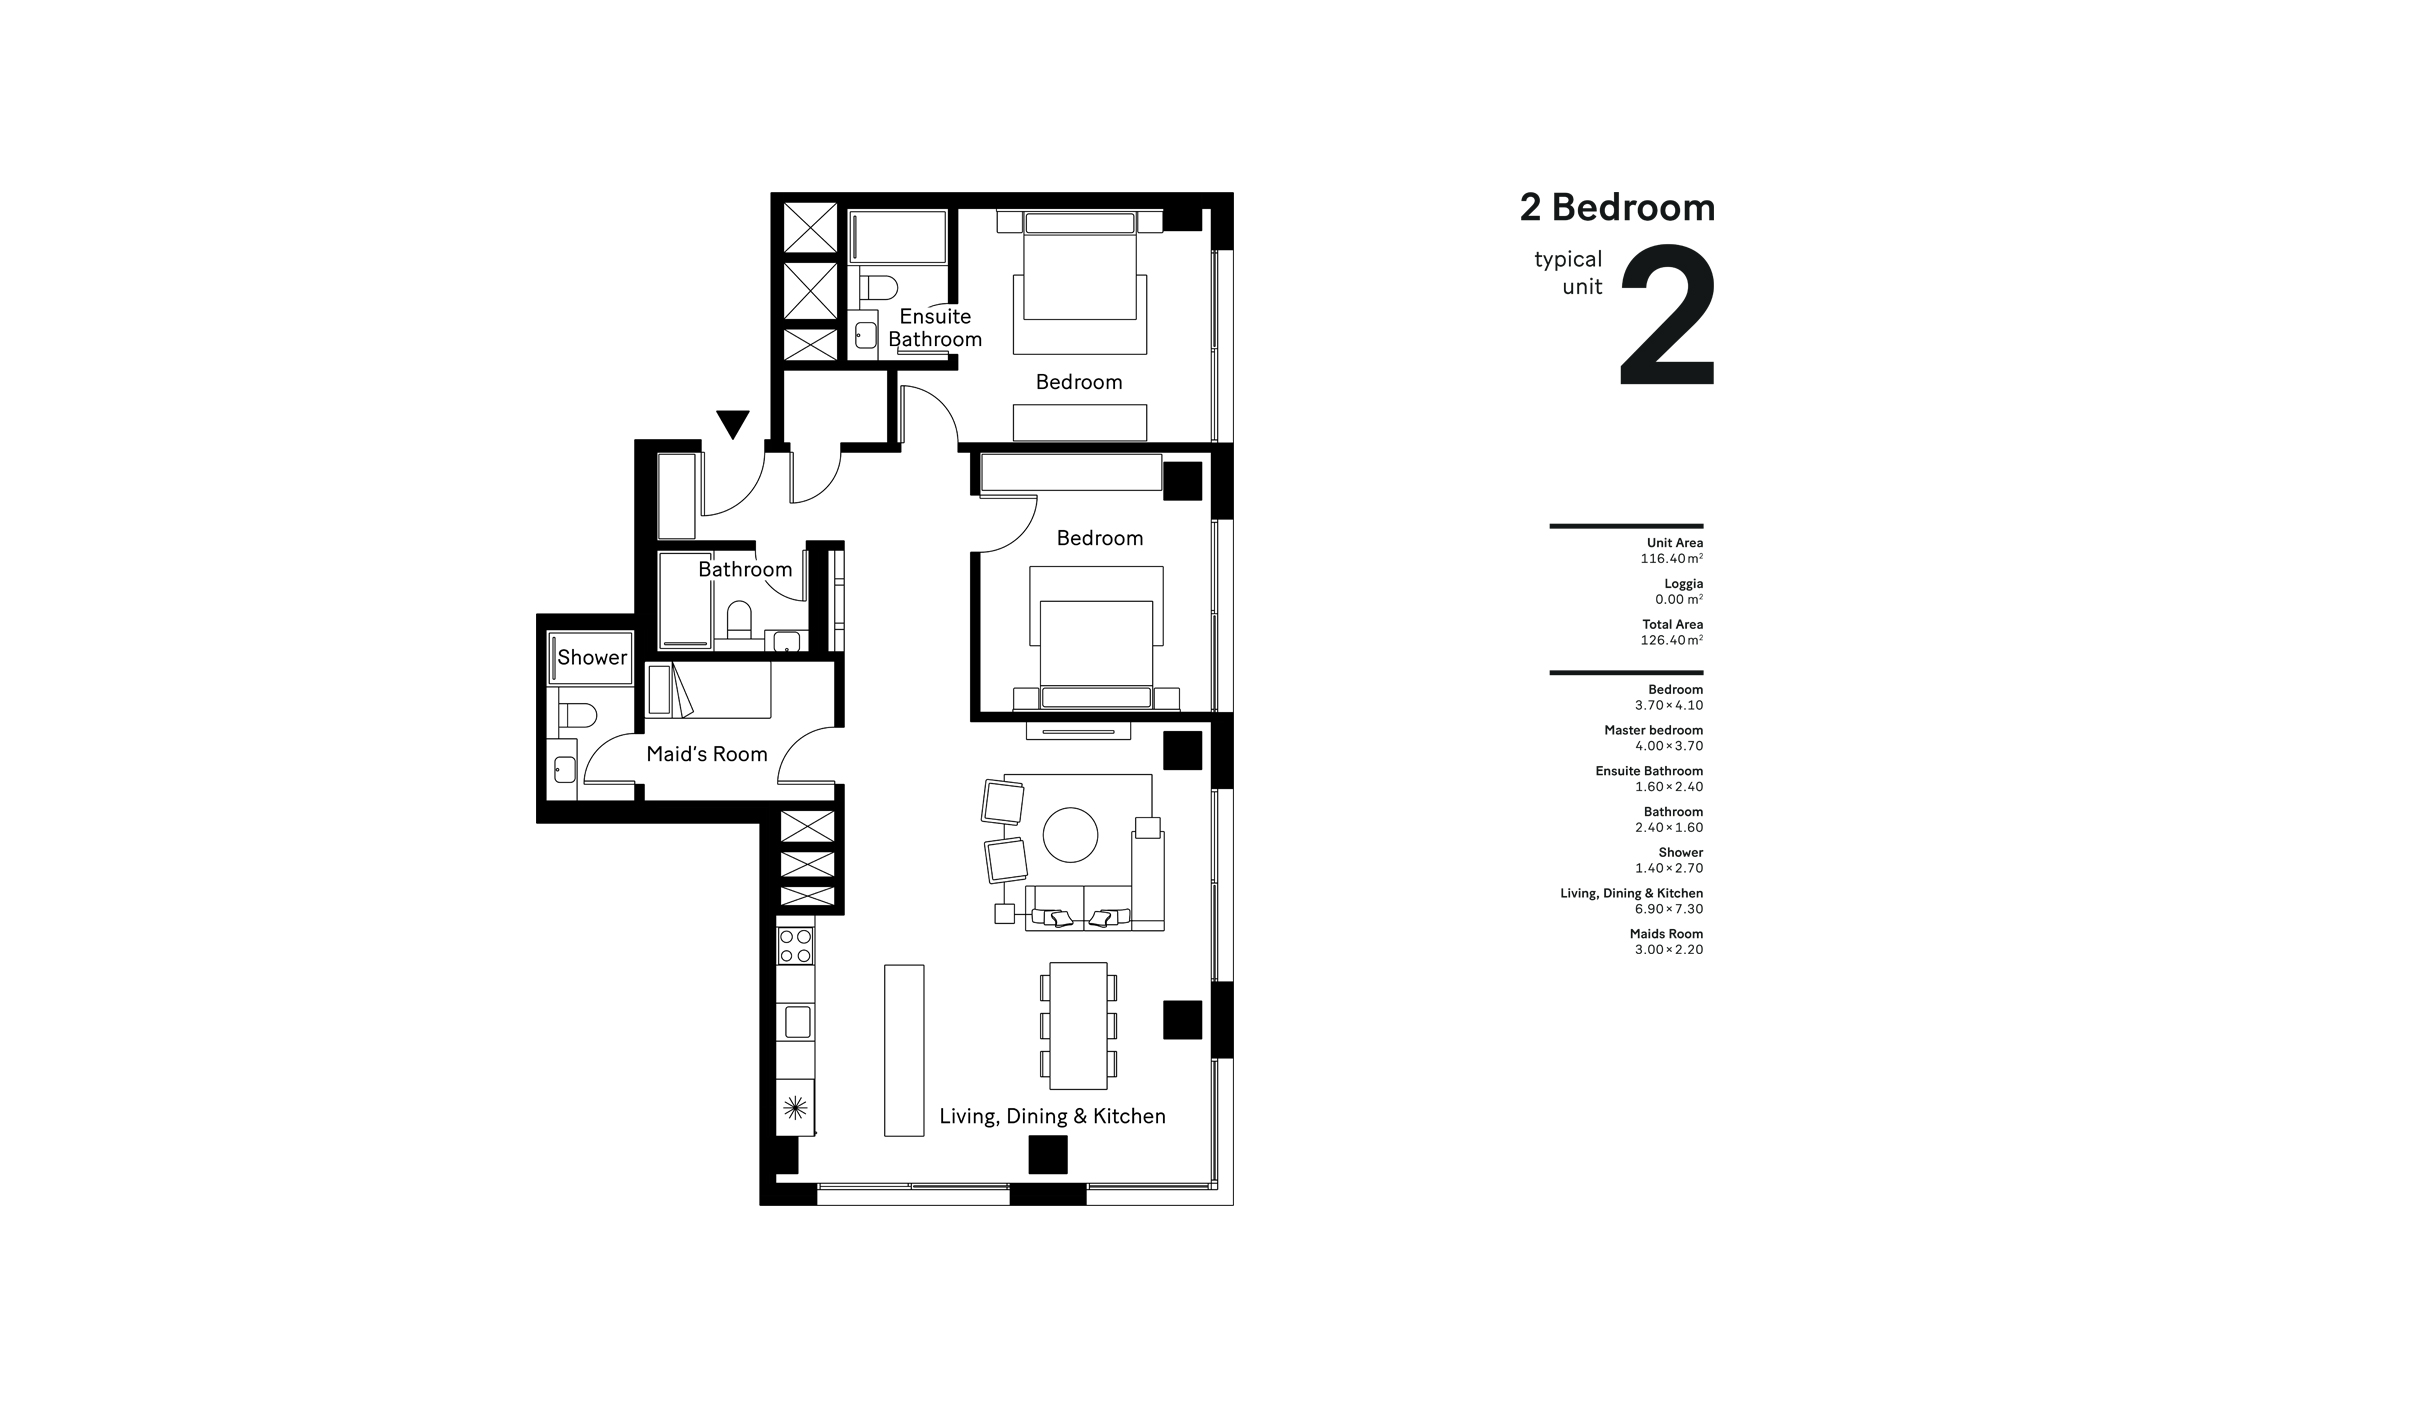 2 Bedroom Typical Unit 2, Size 126.40 Sqm